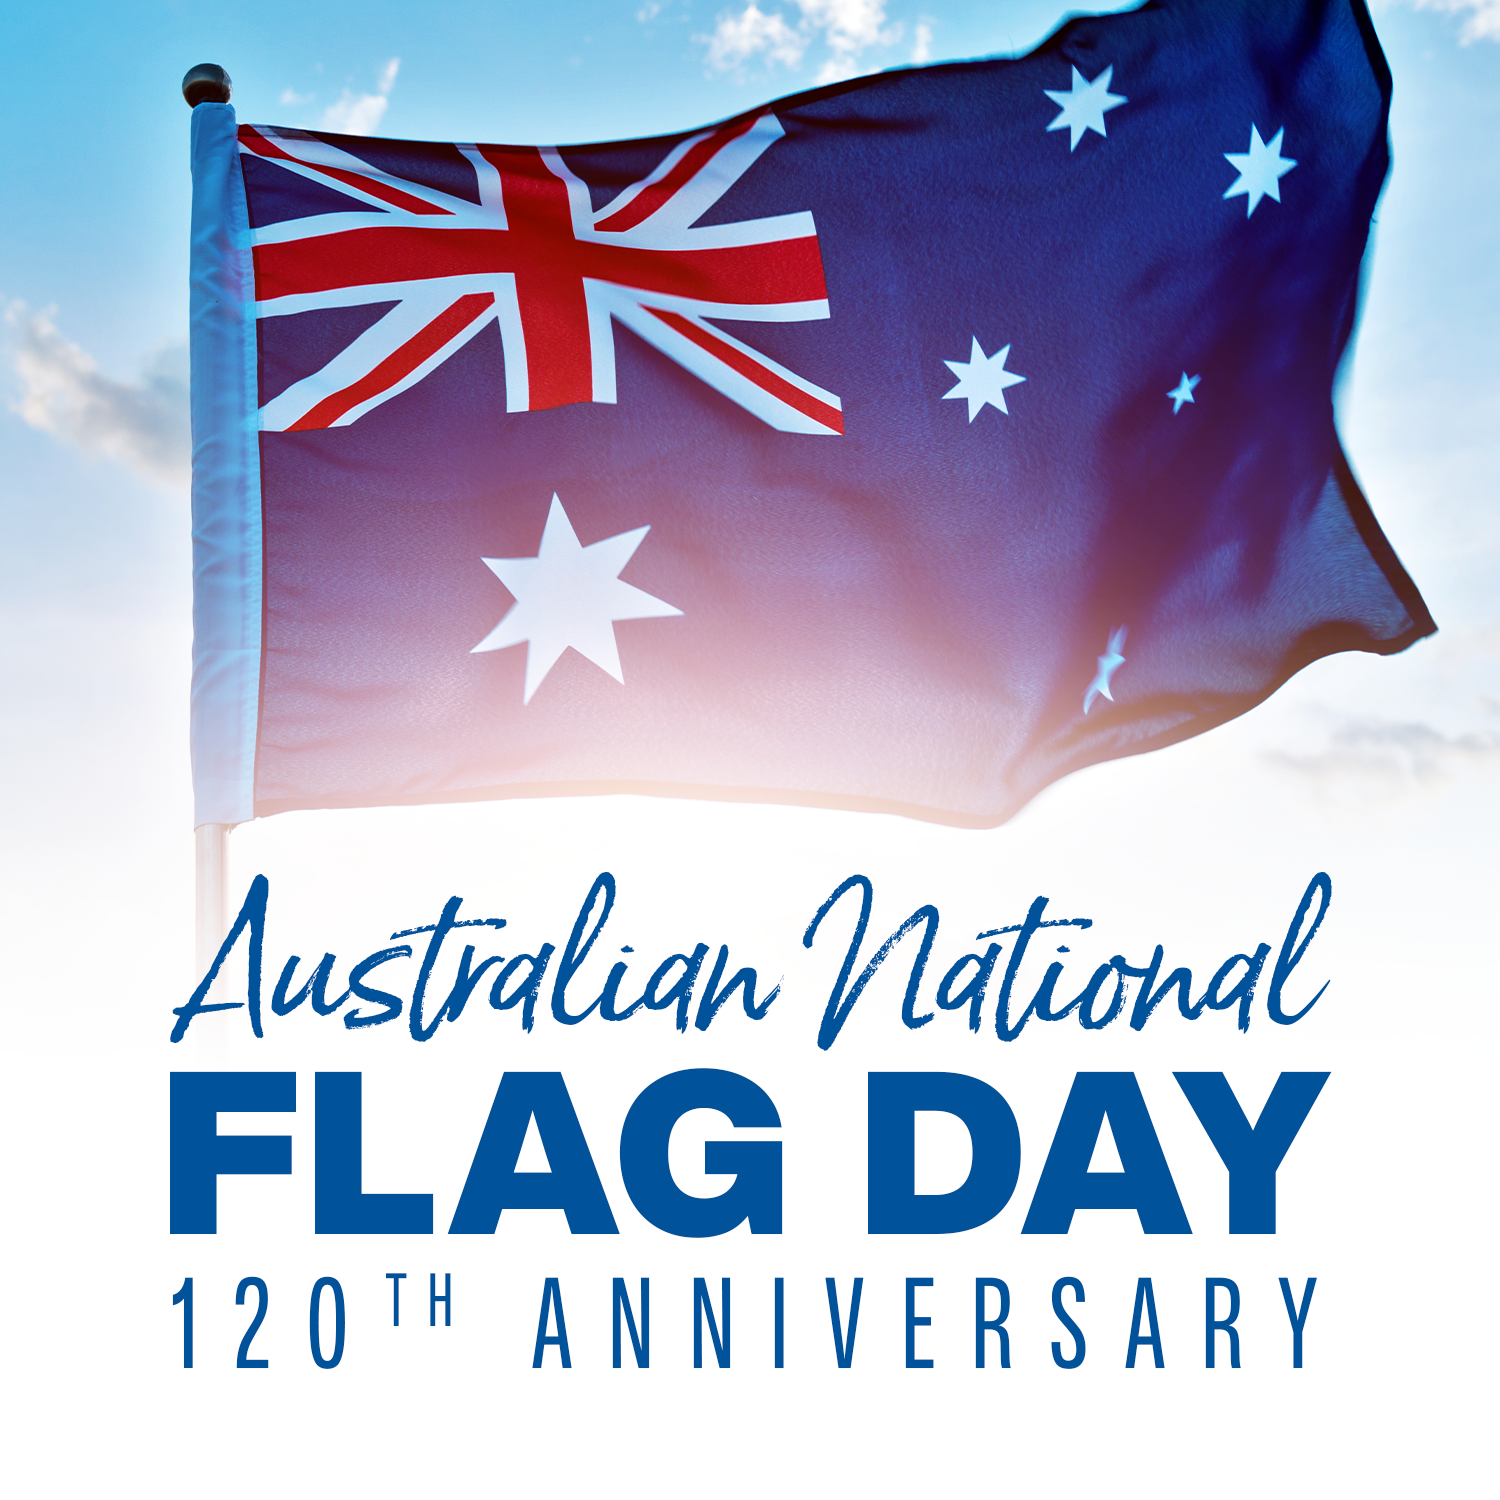 Australian National Flag Day 2021 Featured Image